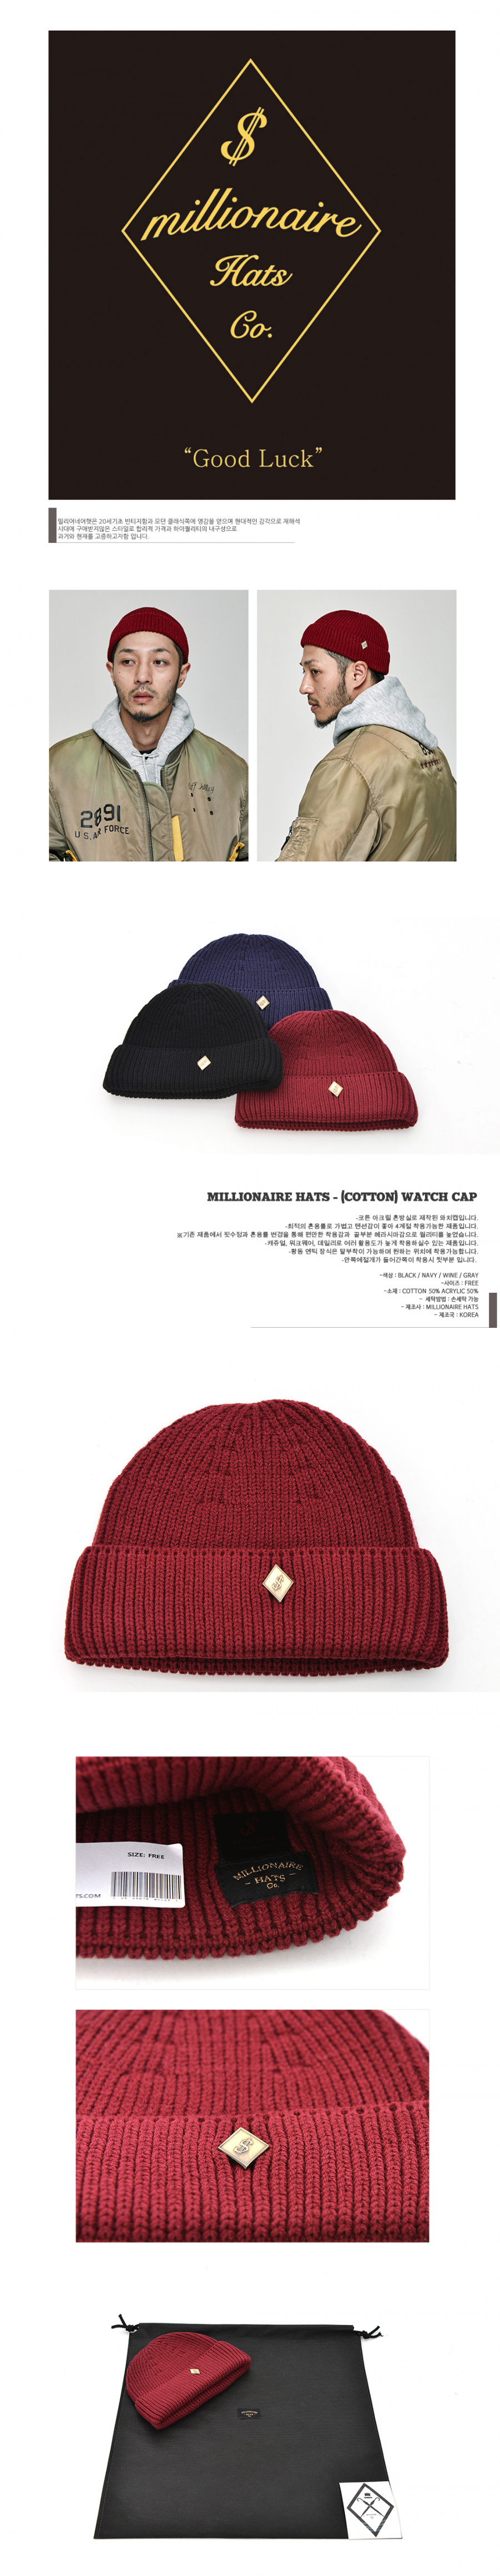 밀리어네어햇(MILLIONAIRE HATS) (cotton) watch cap [WINE]